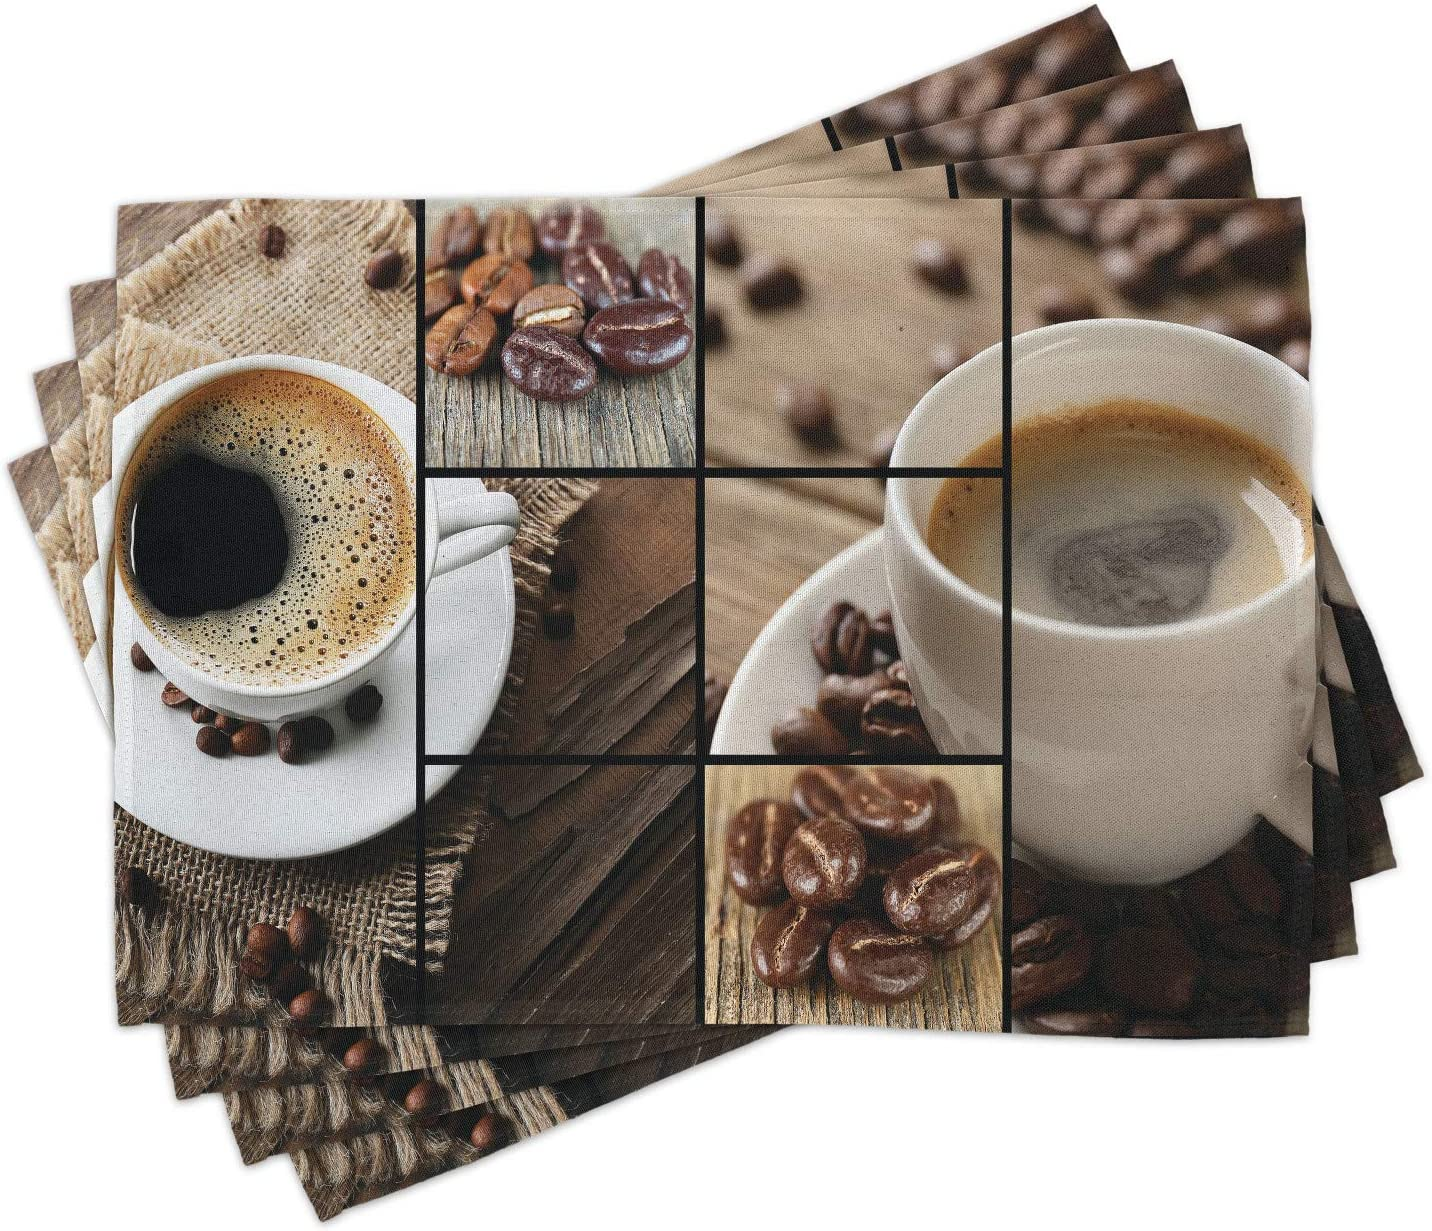 Amazon Com Ambesonne Brown Place Mats Set Of 4 Coffee Themed Collage Close Up Mugs Beans On Wooden Table Aromatic Roasted Espresso Drink Washable Fabric Placemats For Dining Room Kitchen Decor